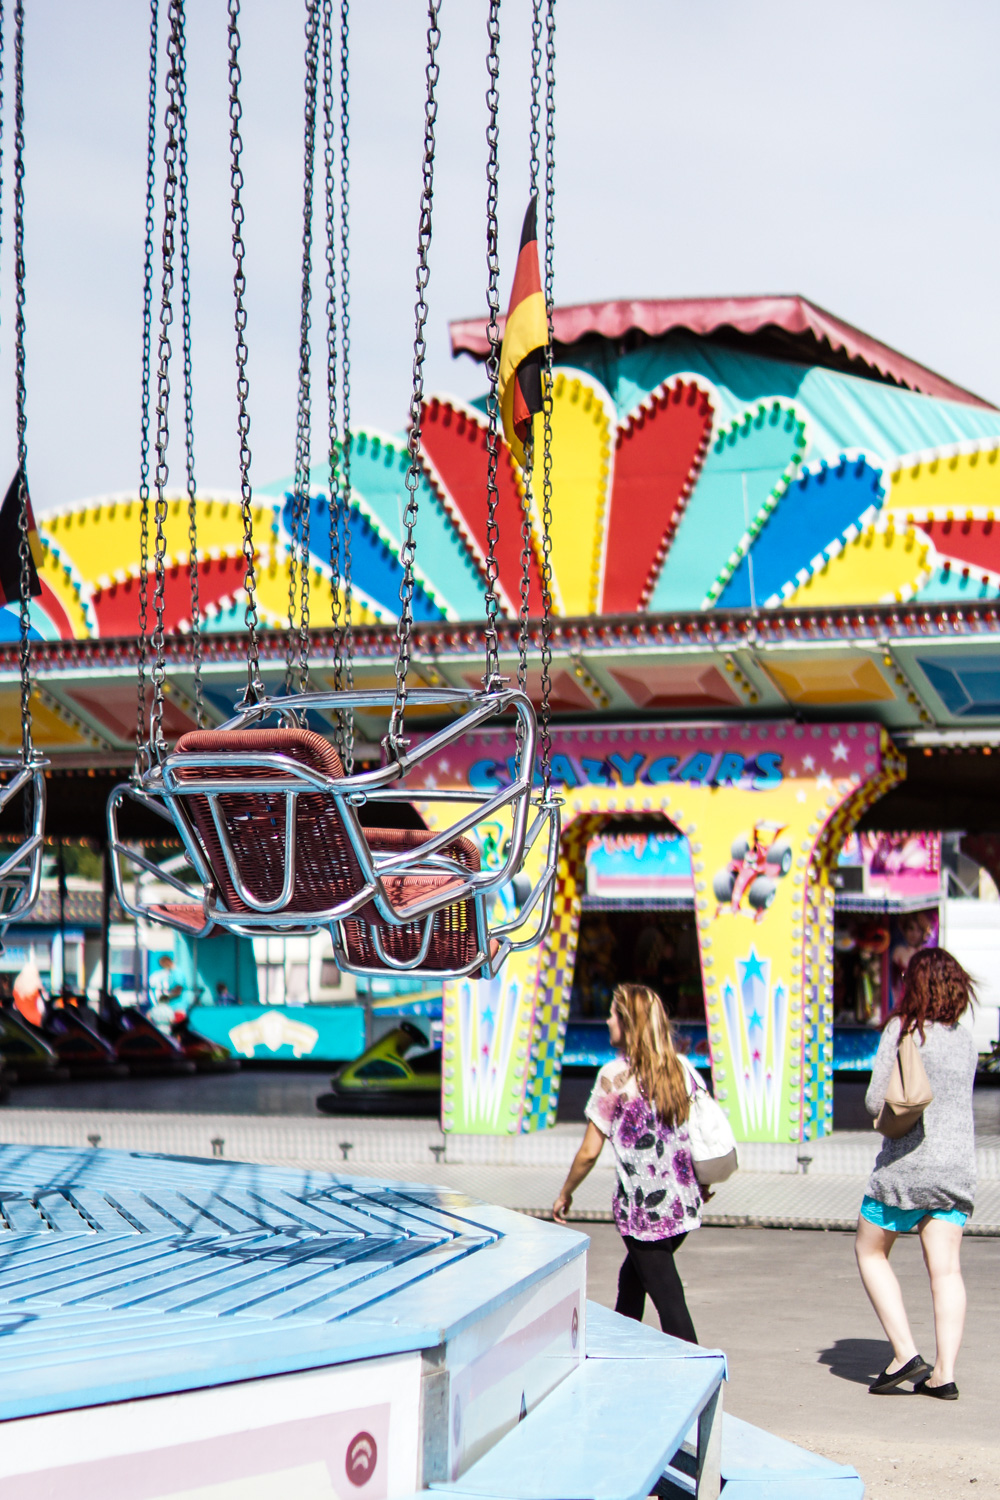 Fun Fair swing carousel